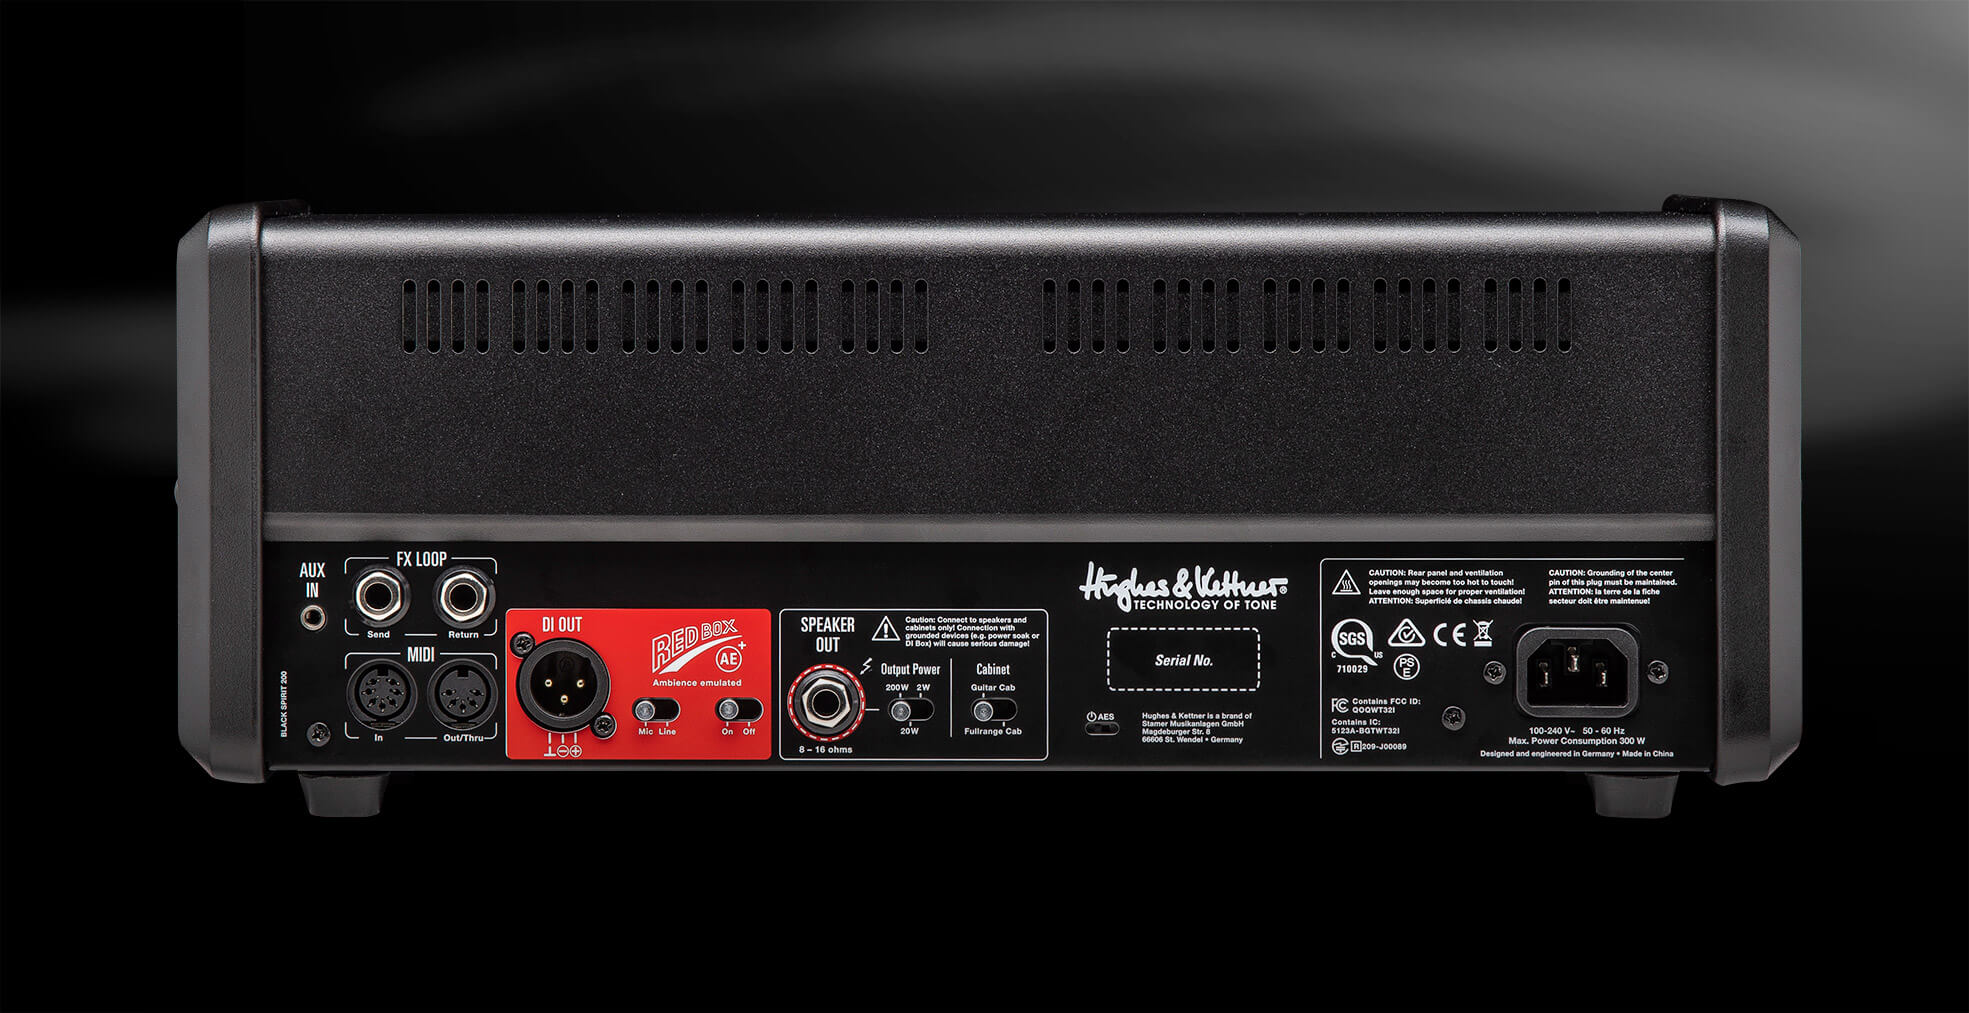 Black Spirit 200 Hughes Kettner Diagram D Audio For 410 Rooms Using A Second Stereo Receiver Pictures